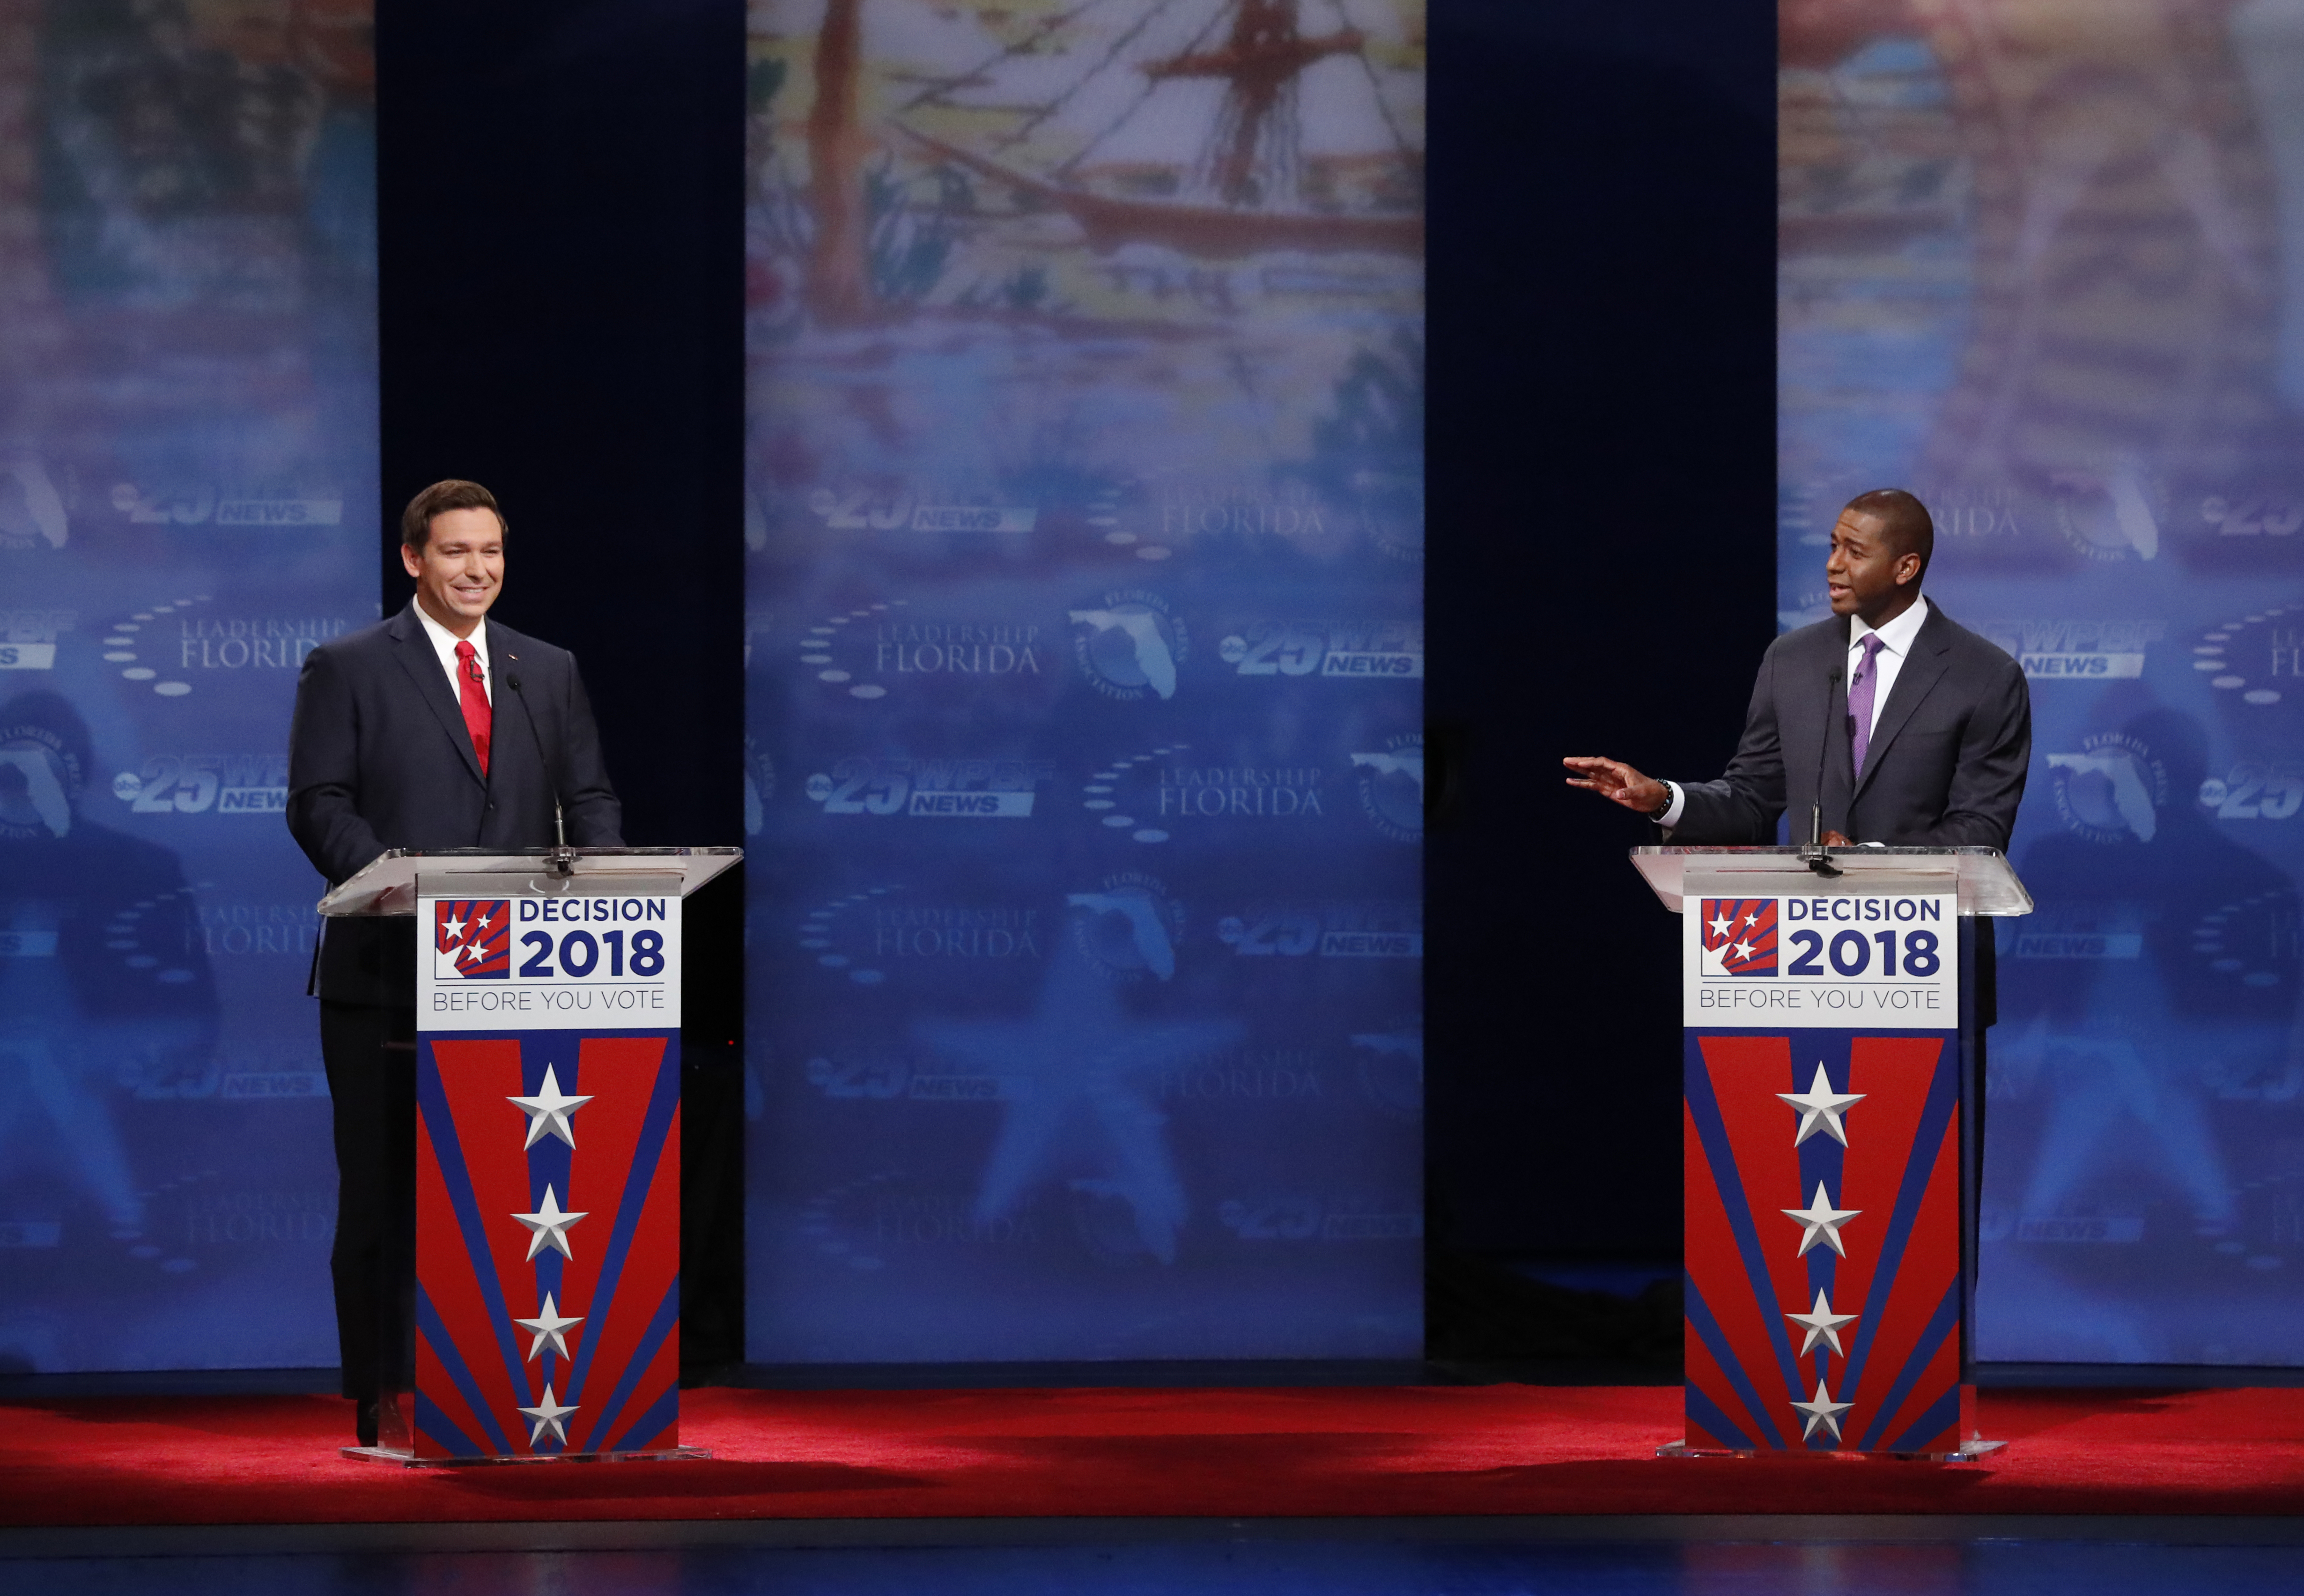 Republican Ron DeSantis (L) and Democrat Andrew Gillum debate at Broward College October 24, 2018 in Davie, Florida. The second and final debate between the two Florida gubernatorial candidates was marked by sharp personal attacks as the November 6 election approaches. (Wilfredo Lee-Pool/Getty Images)